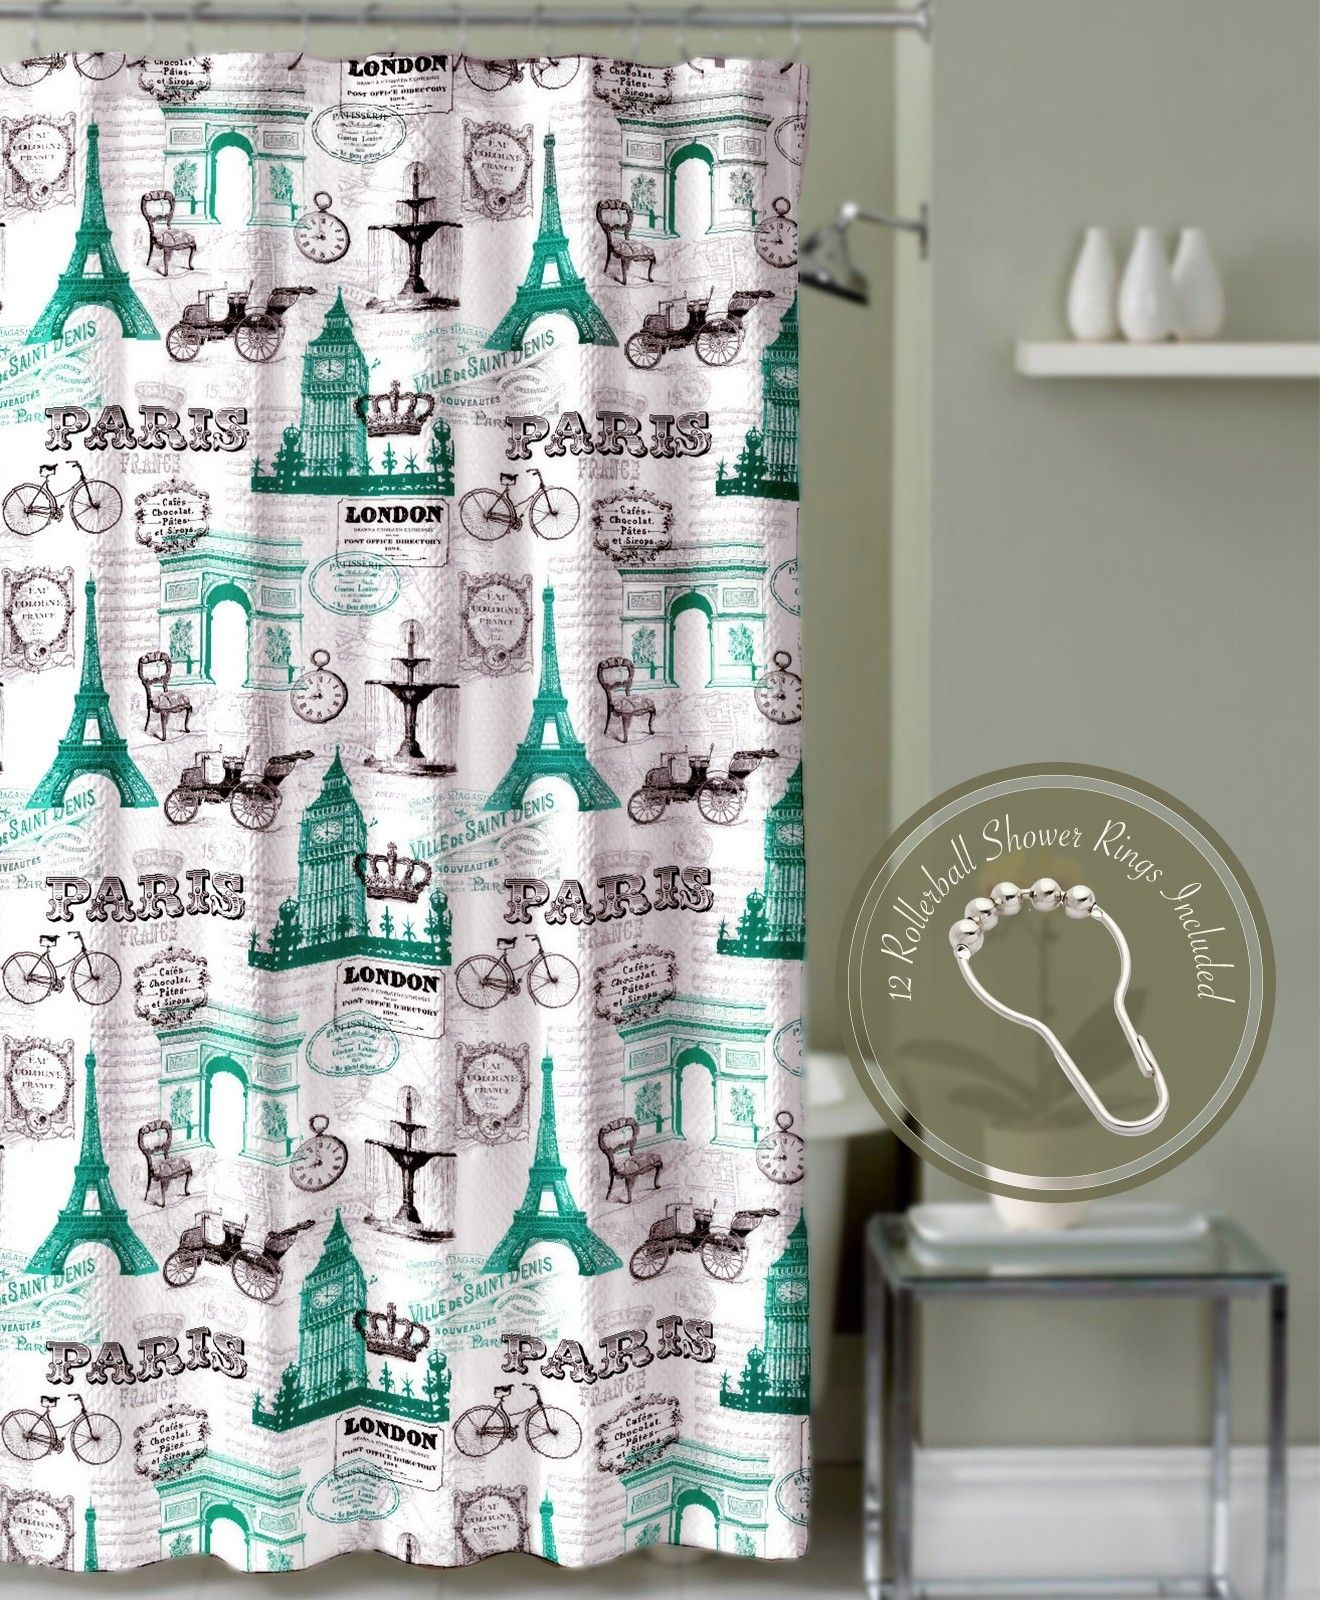 Superb Crest Home Bon Voyage Teal Paris Eiffel Tower Fabric Shower Curtain Set  With 12 Roller Ball Hooks U2013 Shower Curtains U2013 Bed U0026 Bath